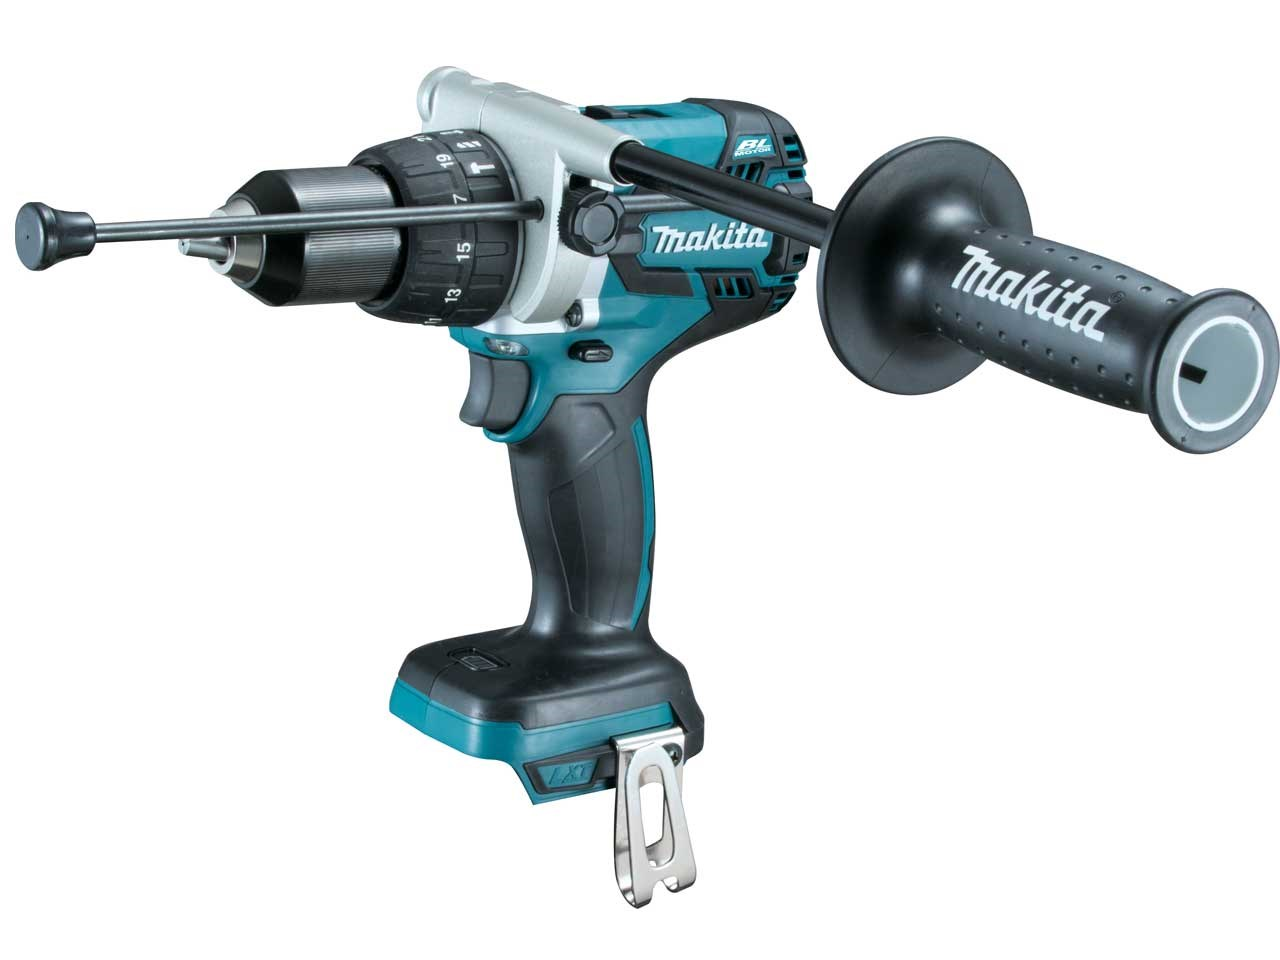 MAKITA 18V BRUSHLESS COMBI DRILL LXT - DHP481 - BODY ONLY